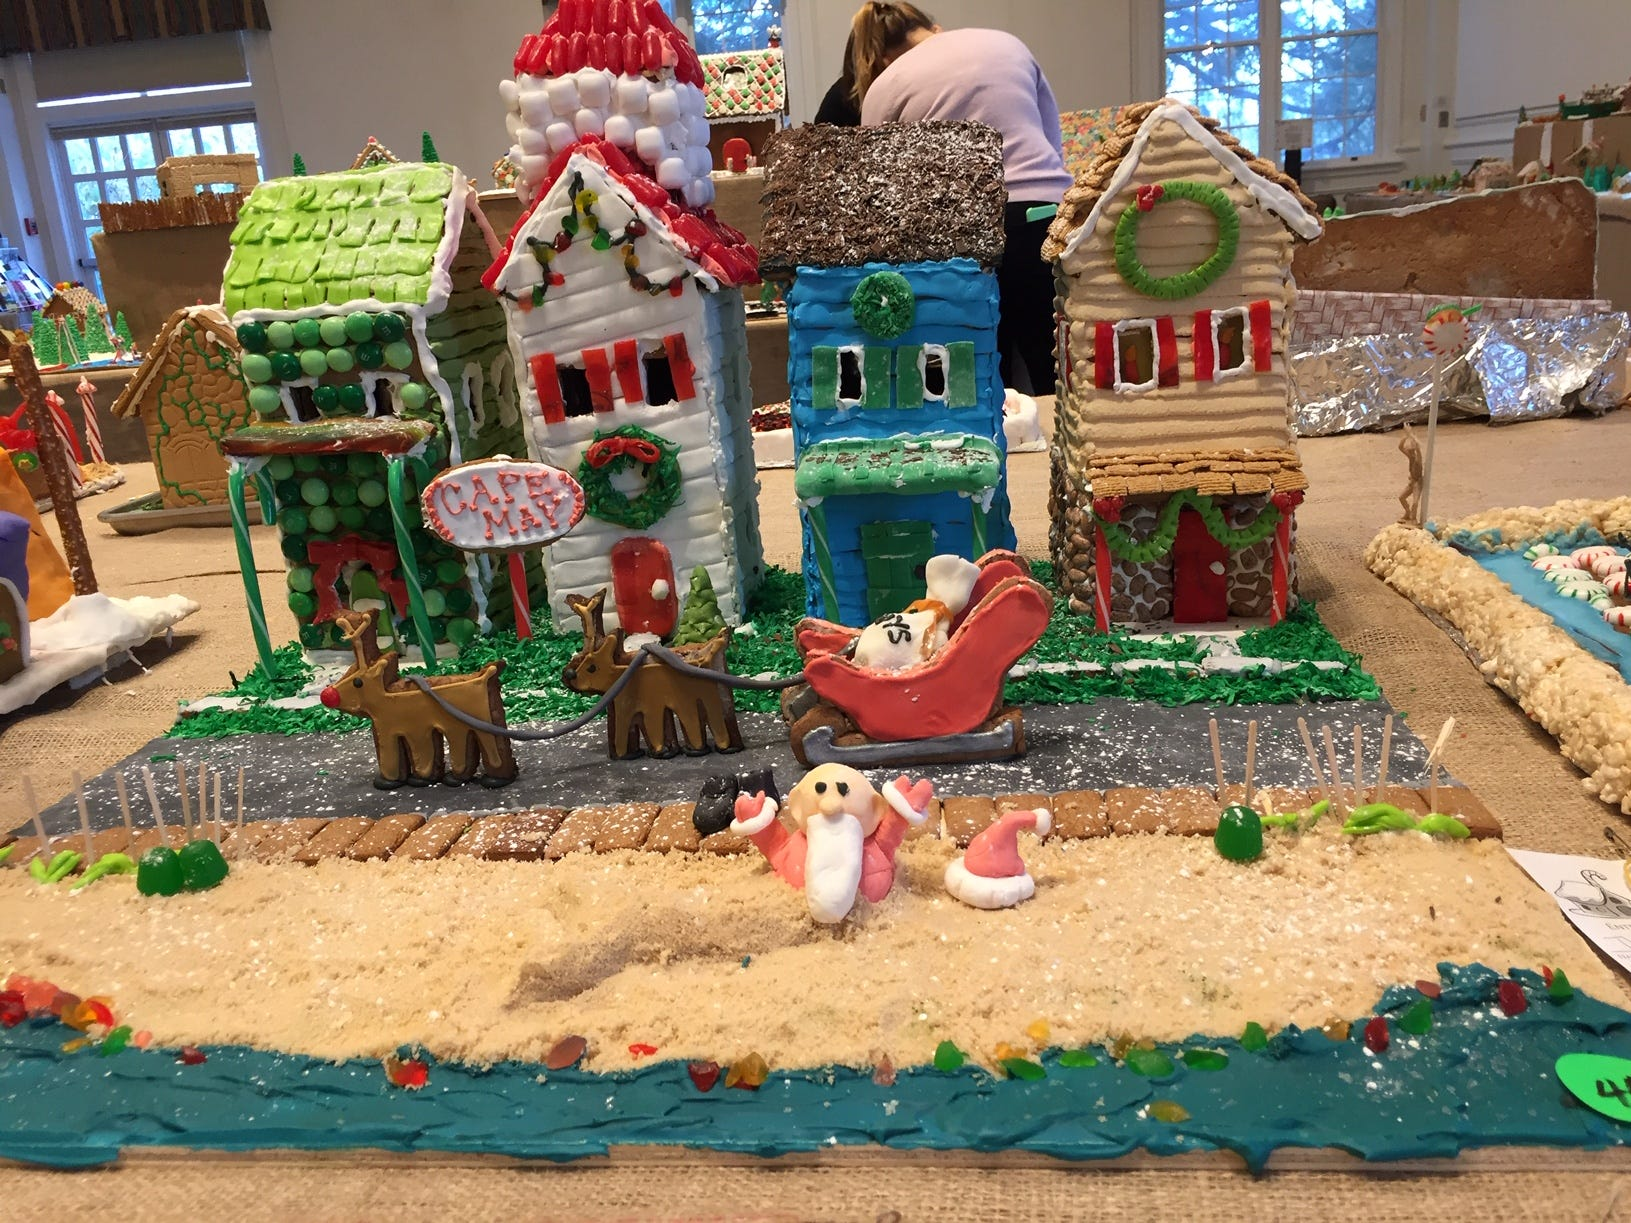 """Santa's Cape May Christmas"" by the Jarvis Family from Flanders at the 2018 Gingerbread Wonderland at the Frelinghuysen Arboretum. Family category."